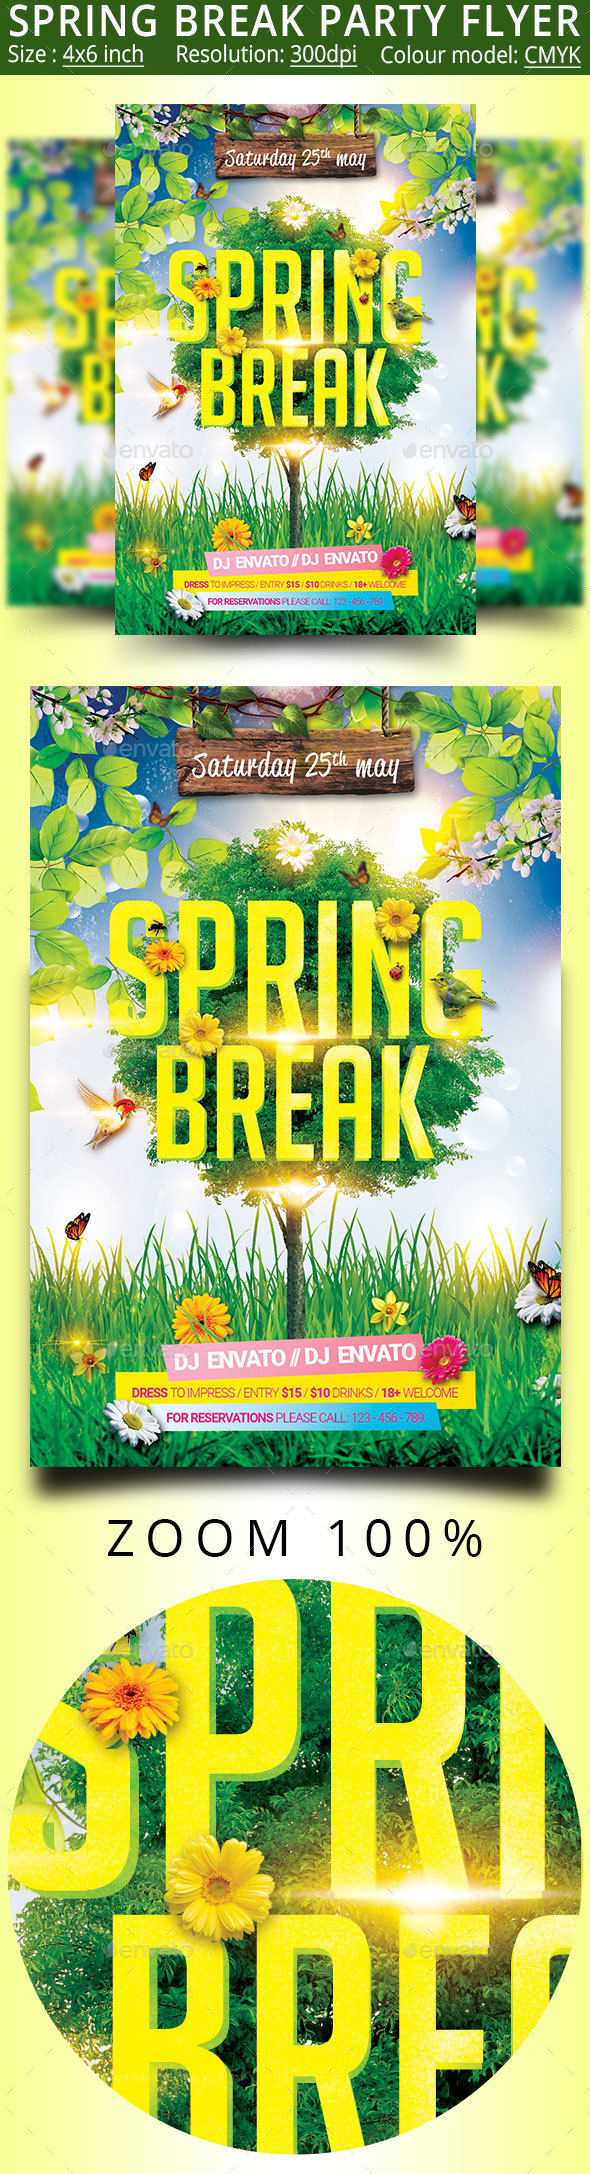 Spring Break Festival Party Flyer - Events Flyers